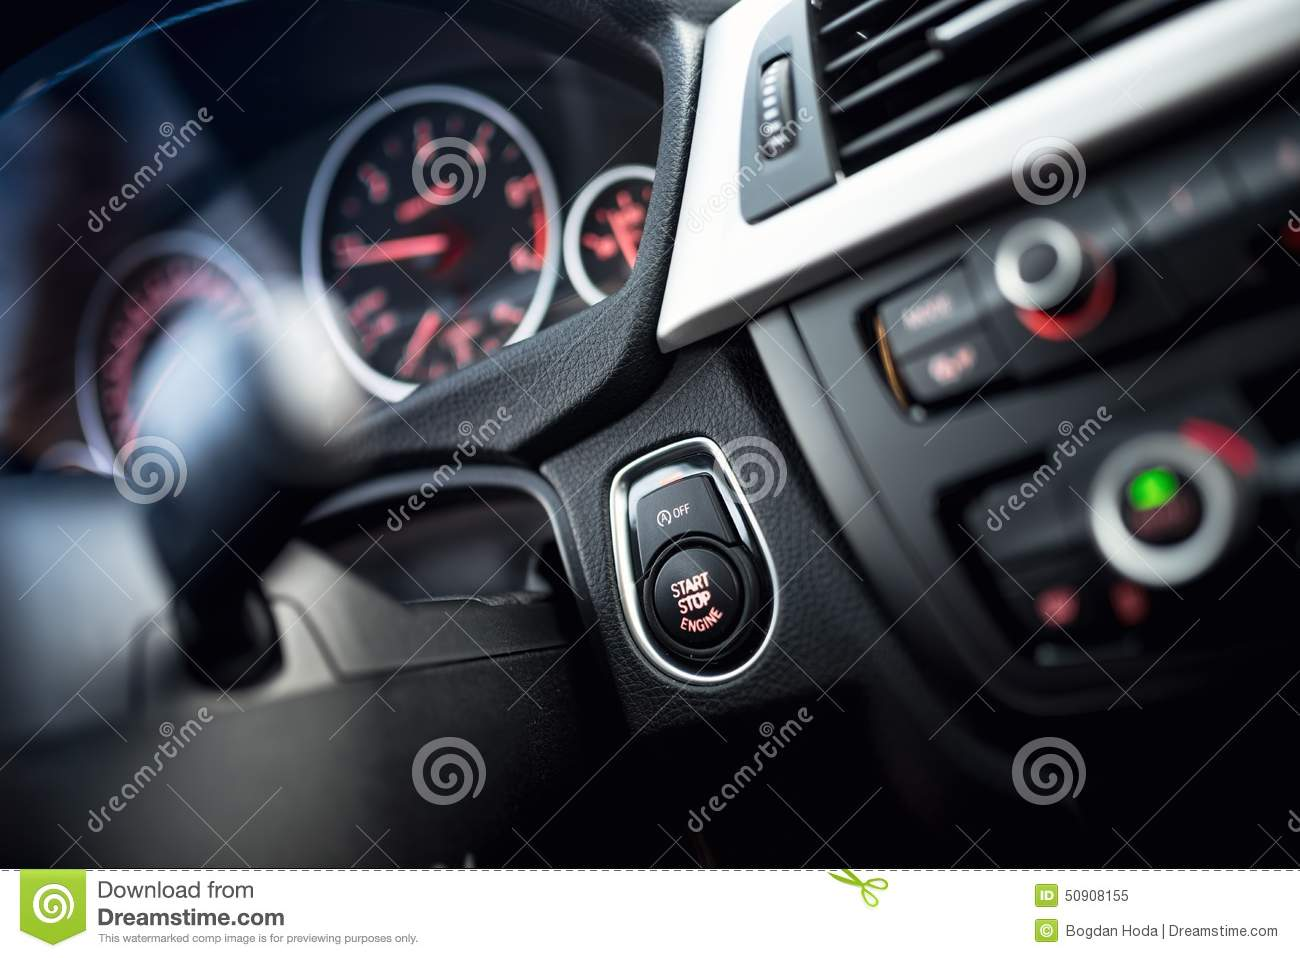 car start and stop button modern car interior with dashboard and cockpit details stock image. Black Bedroom Furniture Sets. Home Design Ideas